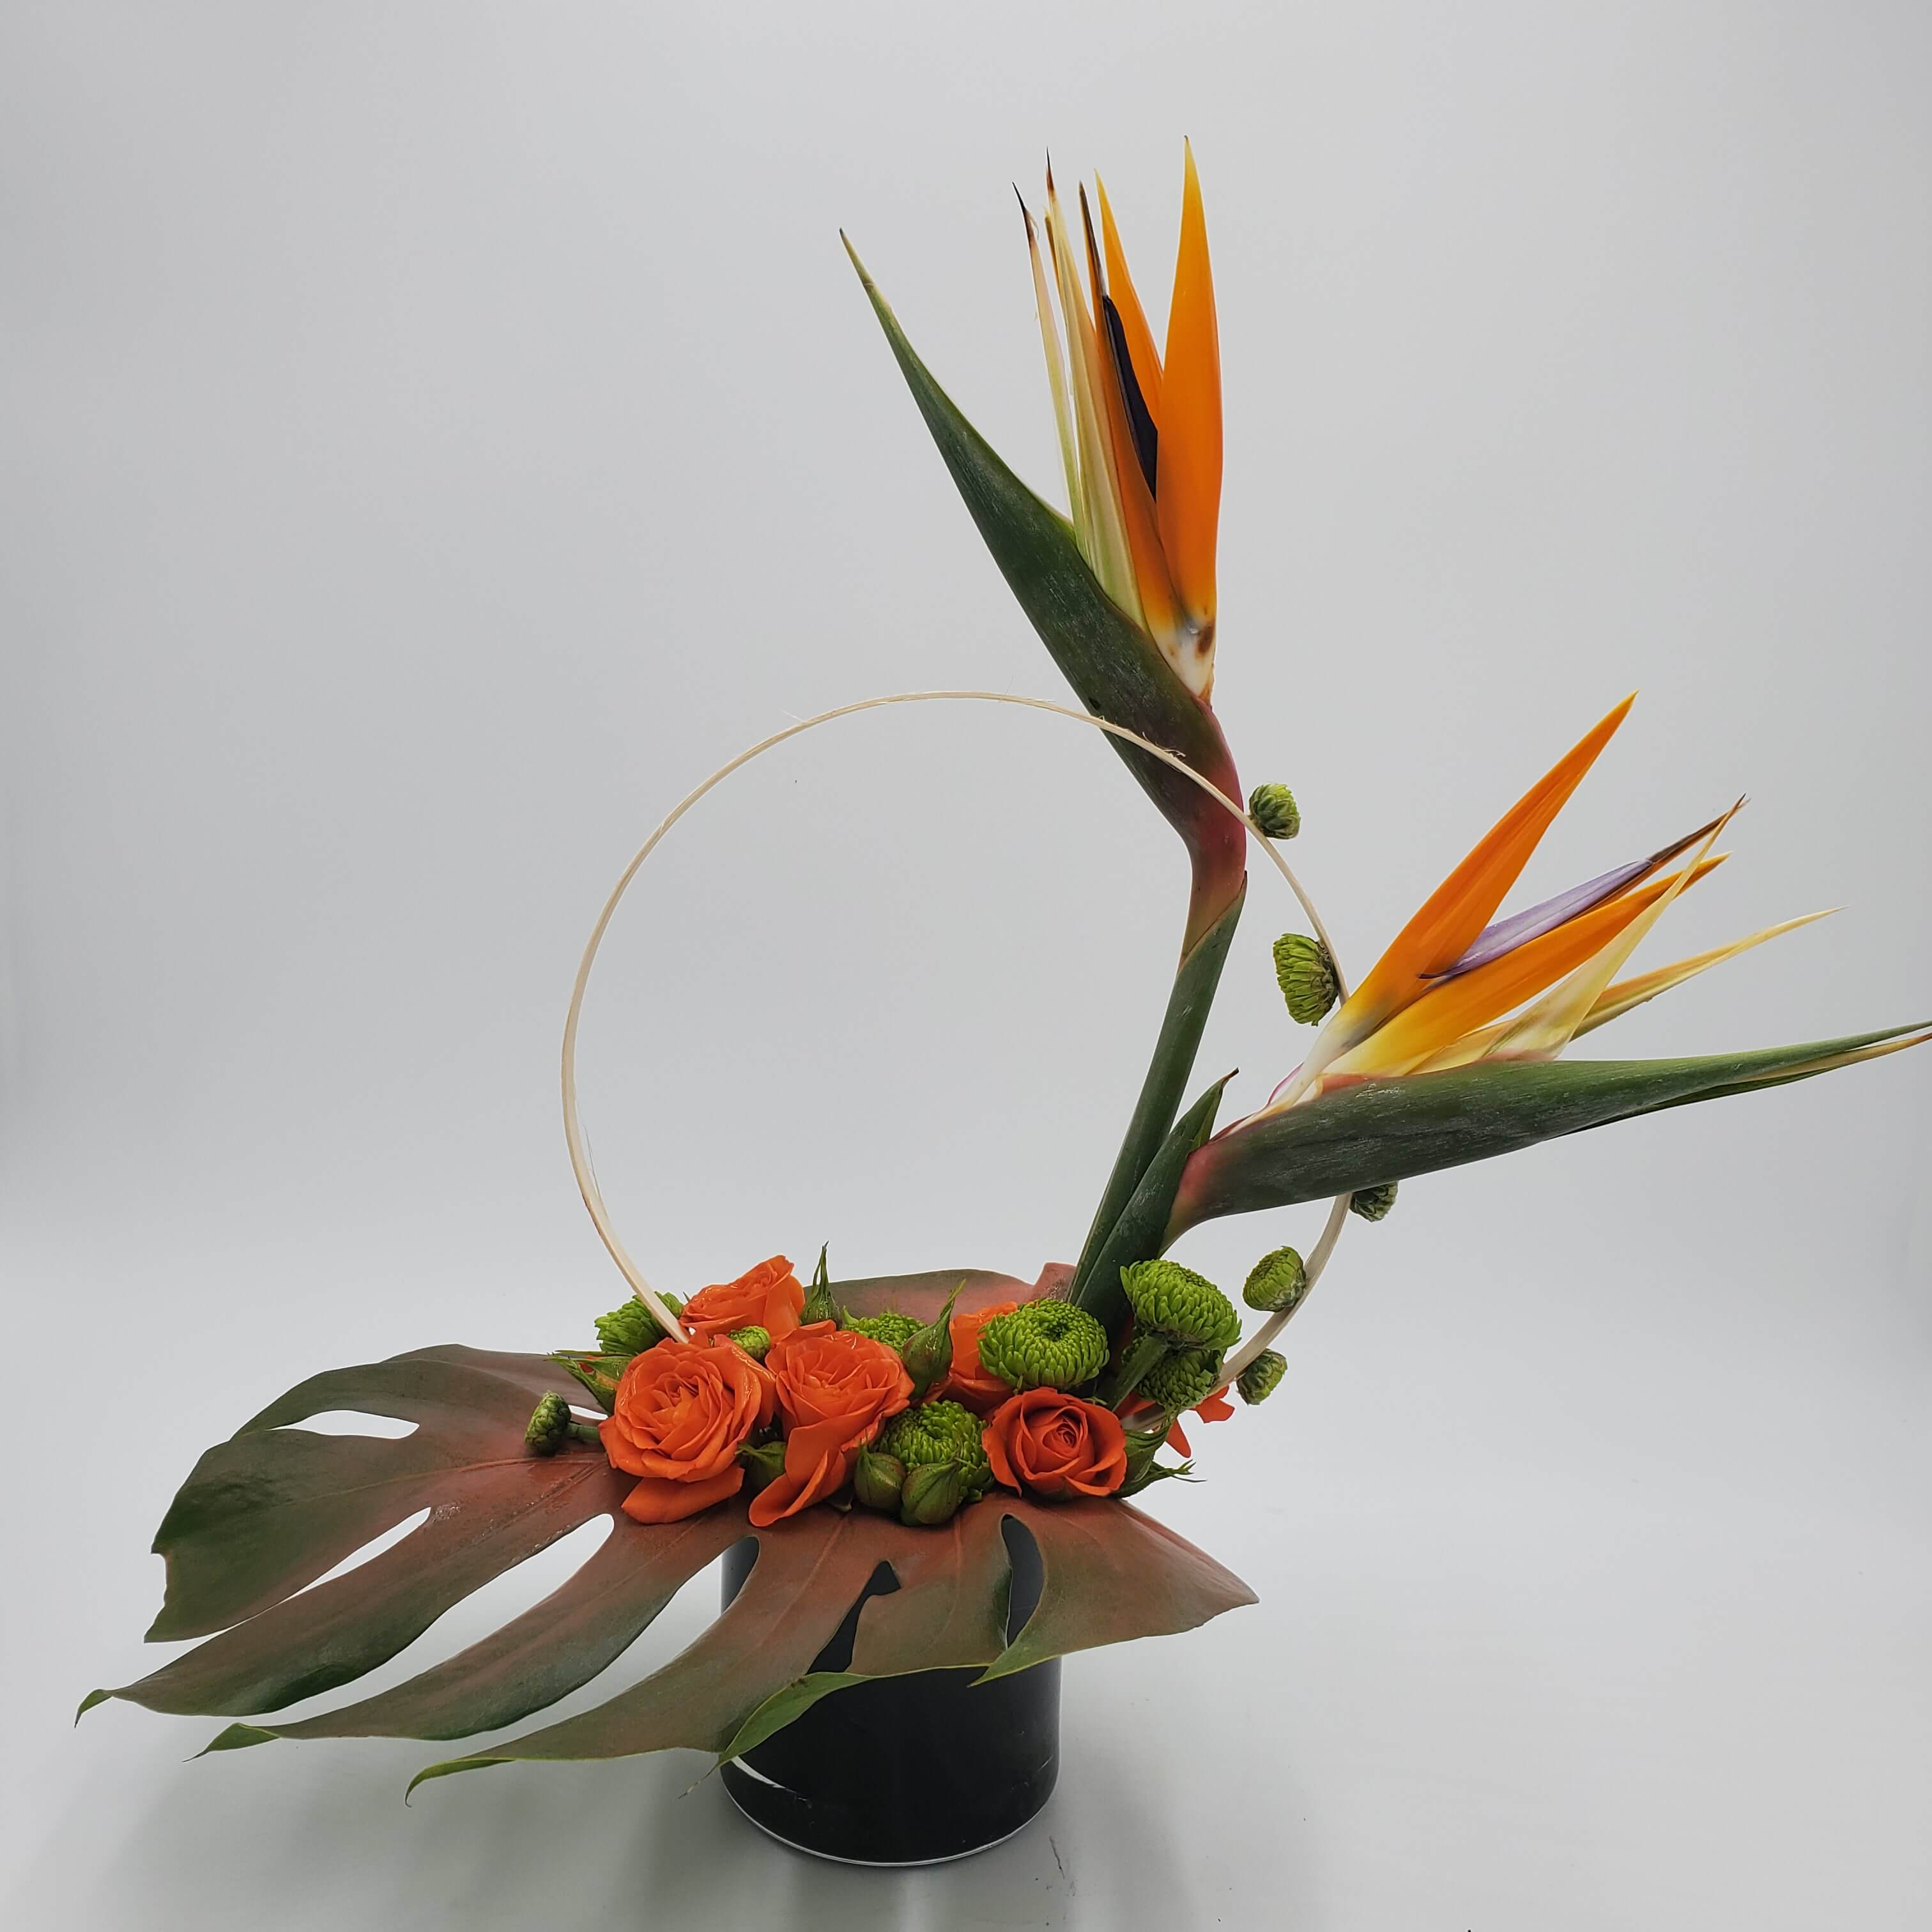 Highstyle floral design birds of paradise